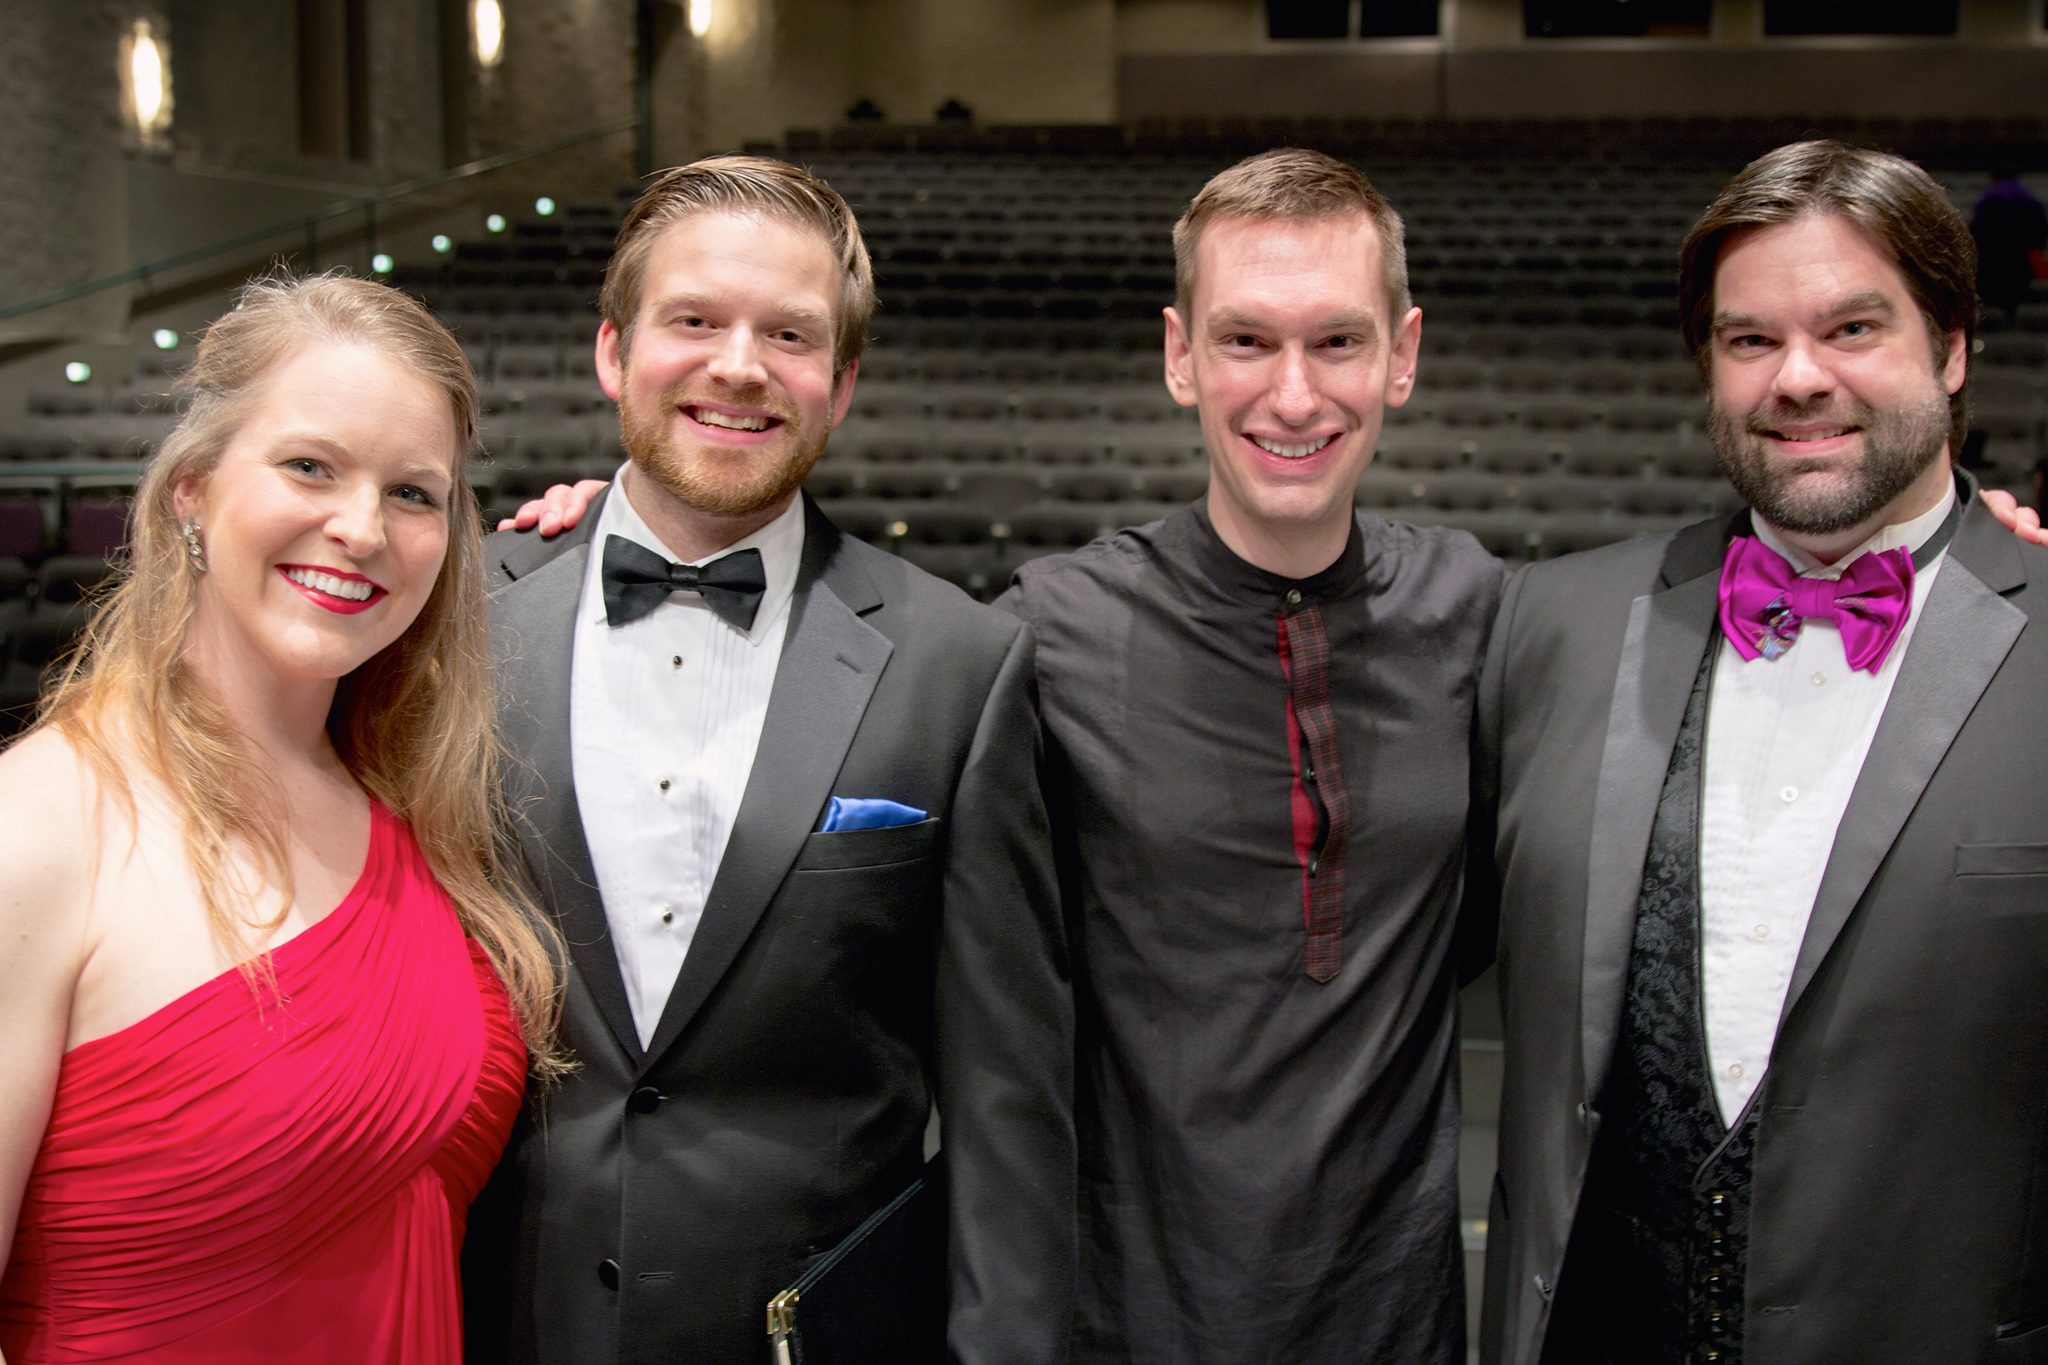 Carmina Burana Soloists and Dr. Potter